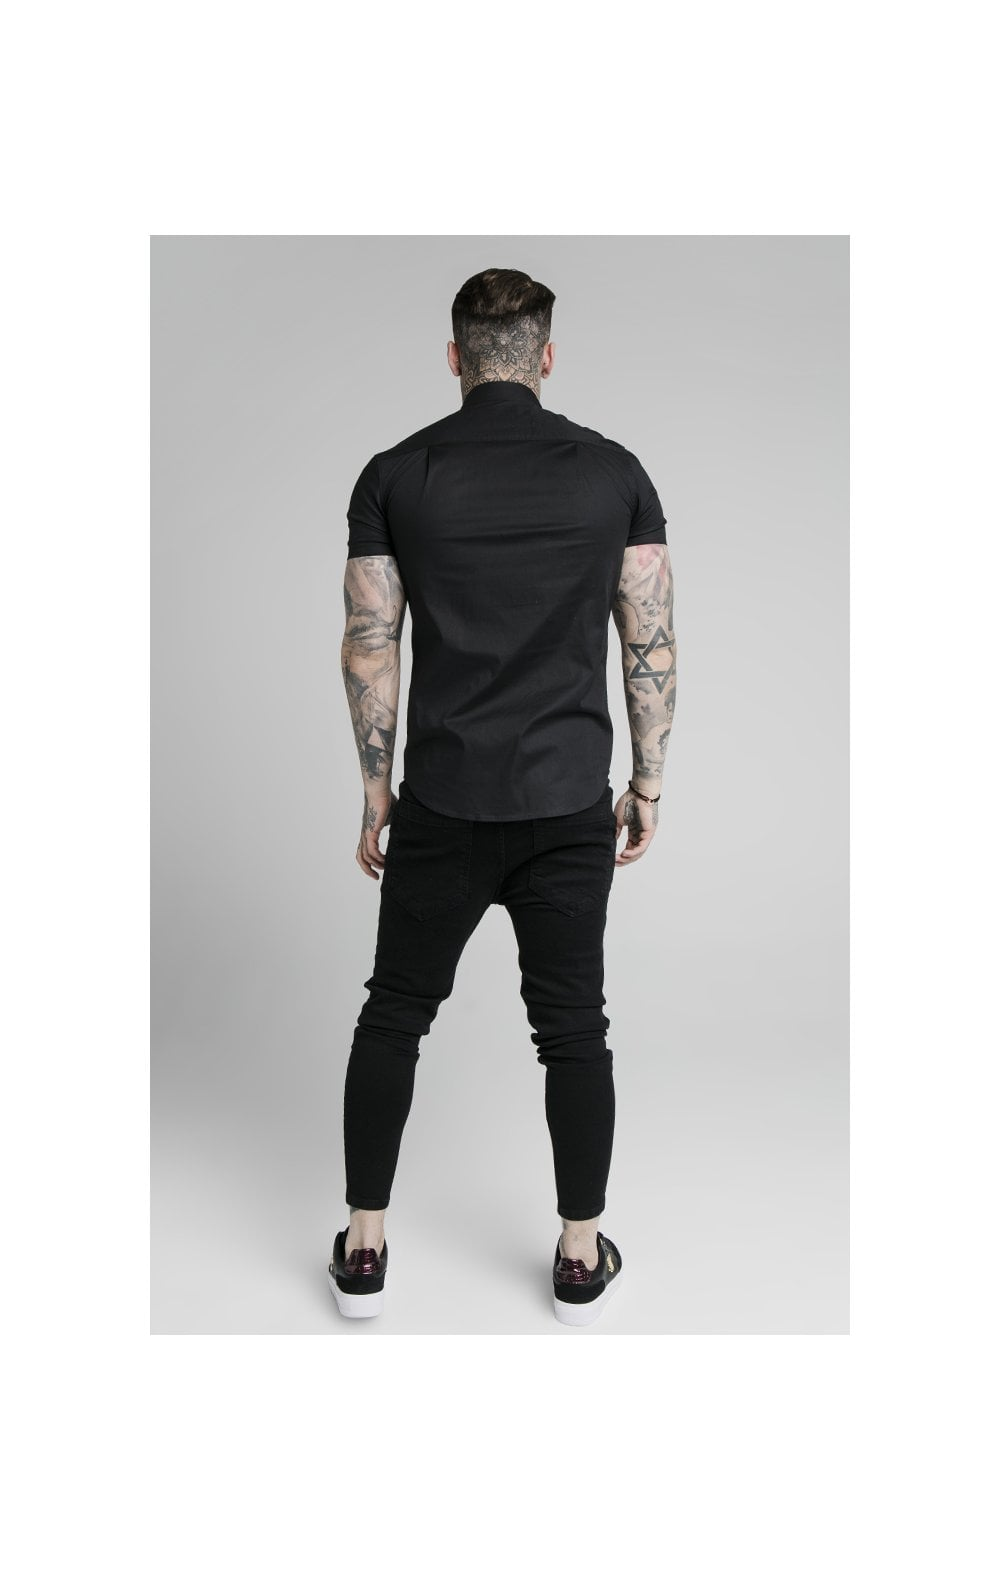 SikSilk S/S Woven Tape Placket Shirt - Black (3)